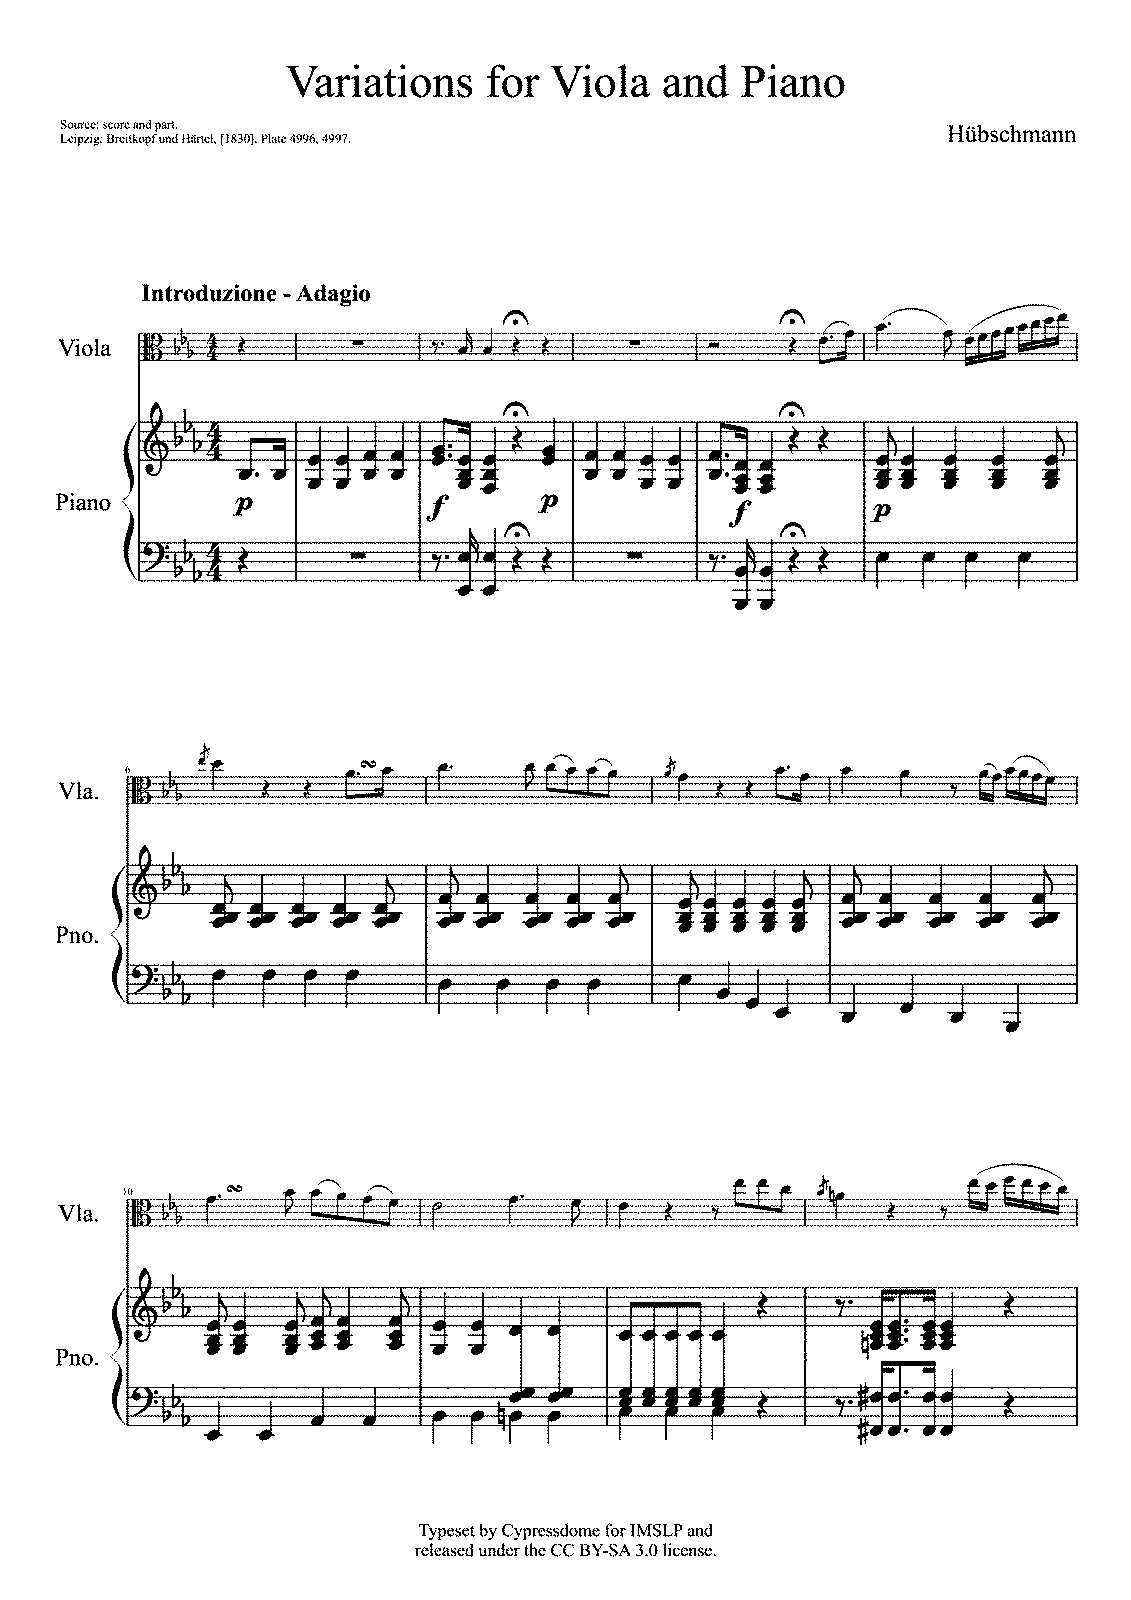 PMLP299375-Hubschmann Variations for Viola and Piano.pdf